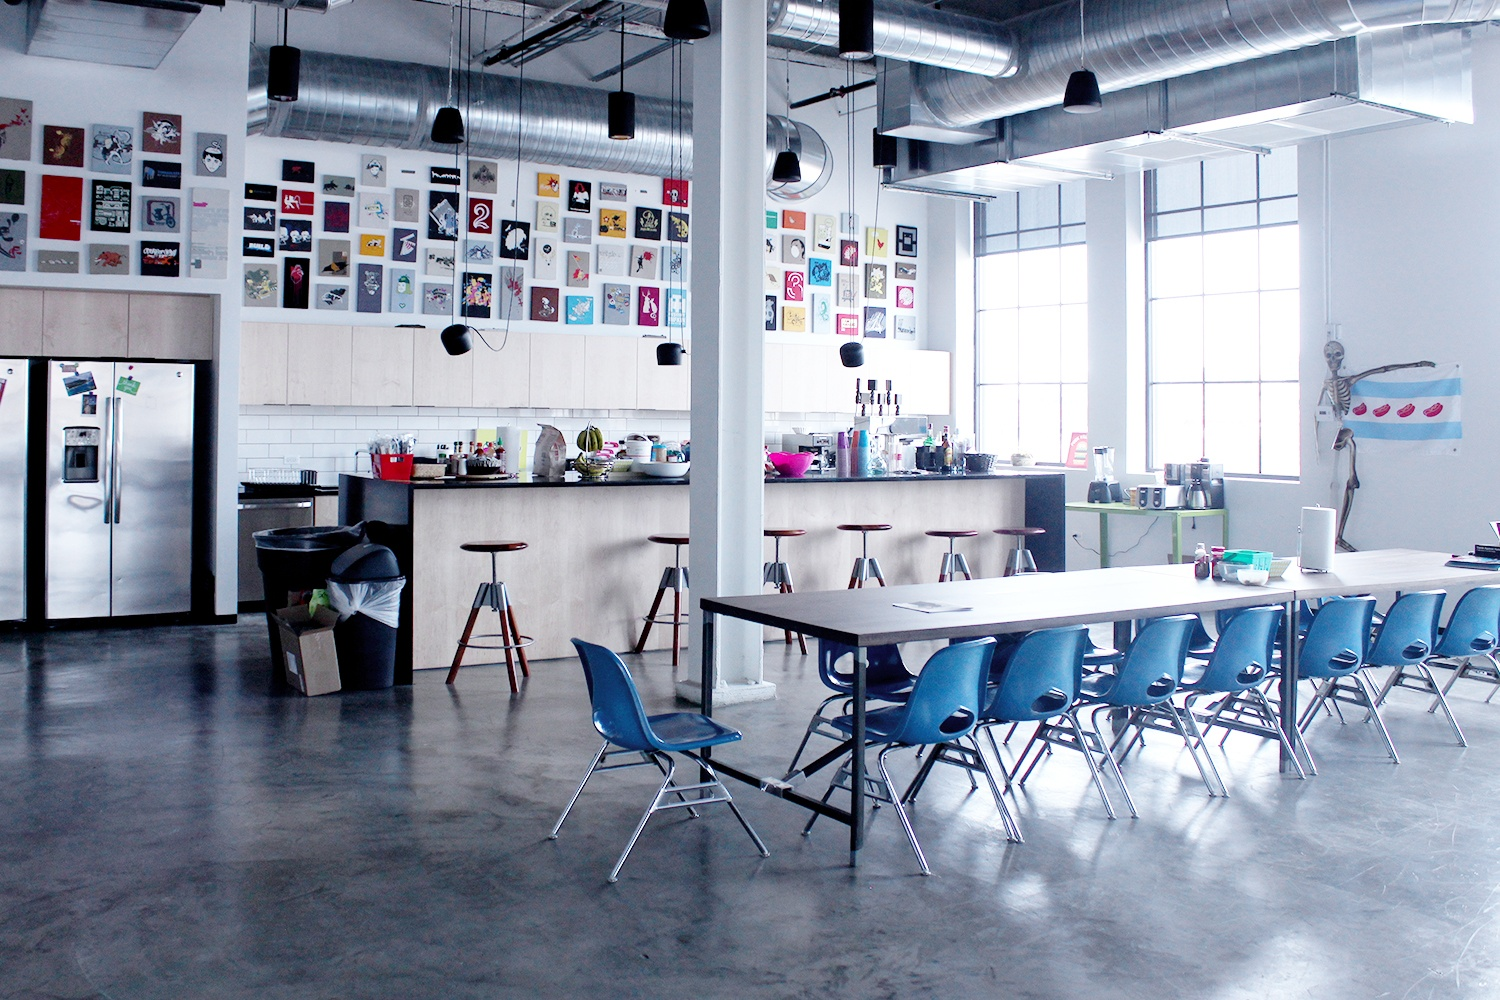 The open concept offices at Threadless.